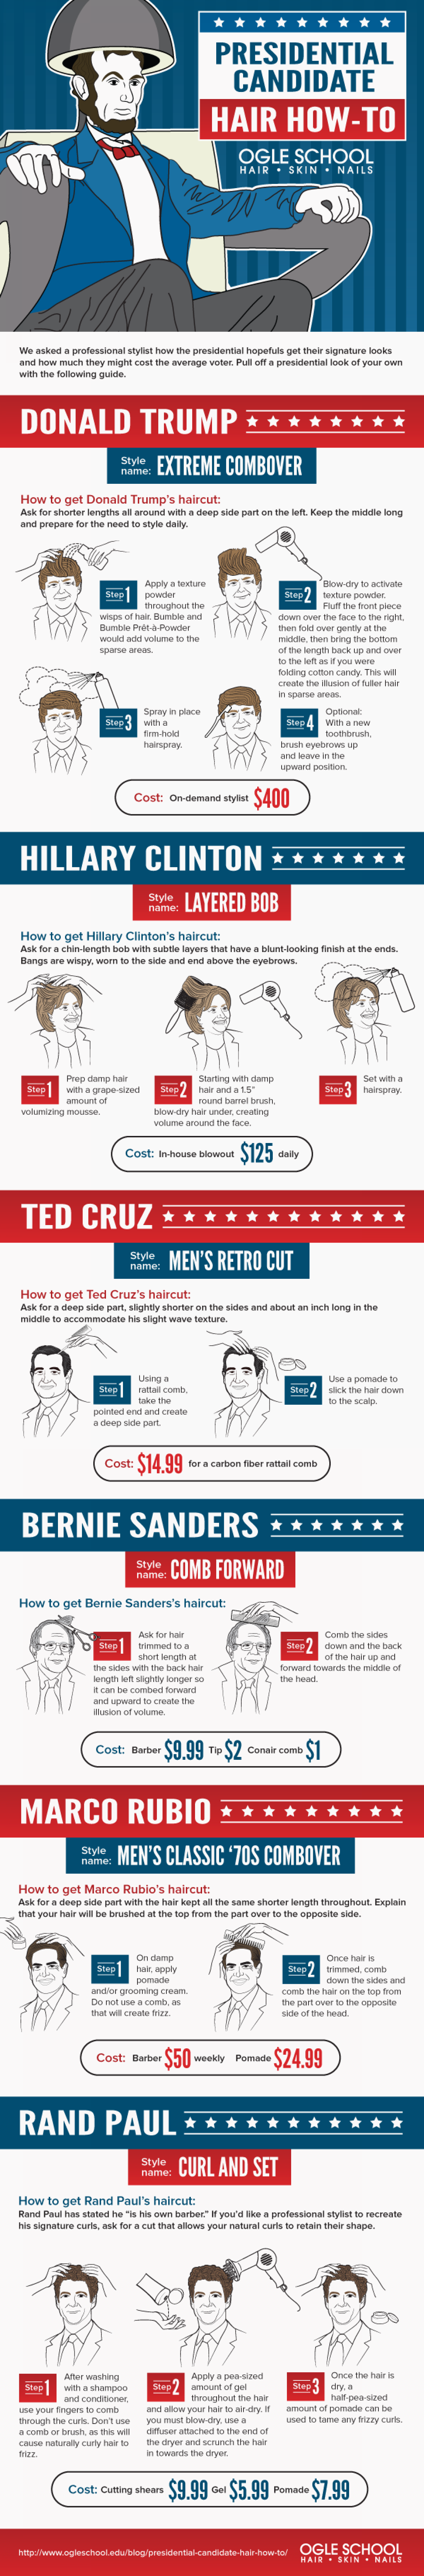 Presidential Hair Styles Guide Infographic